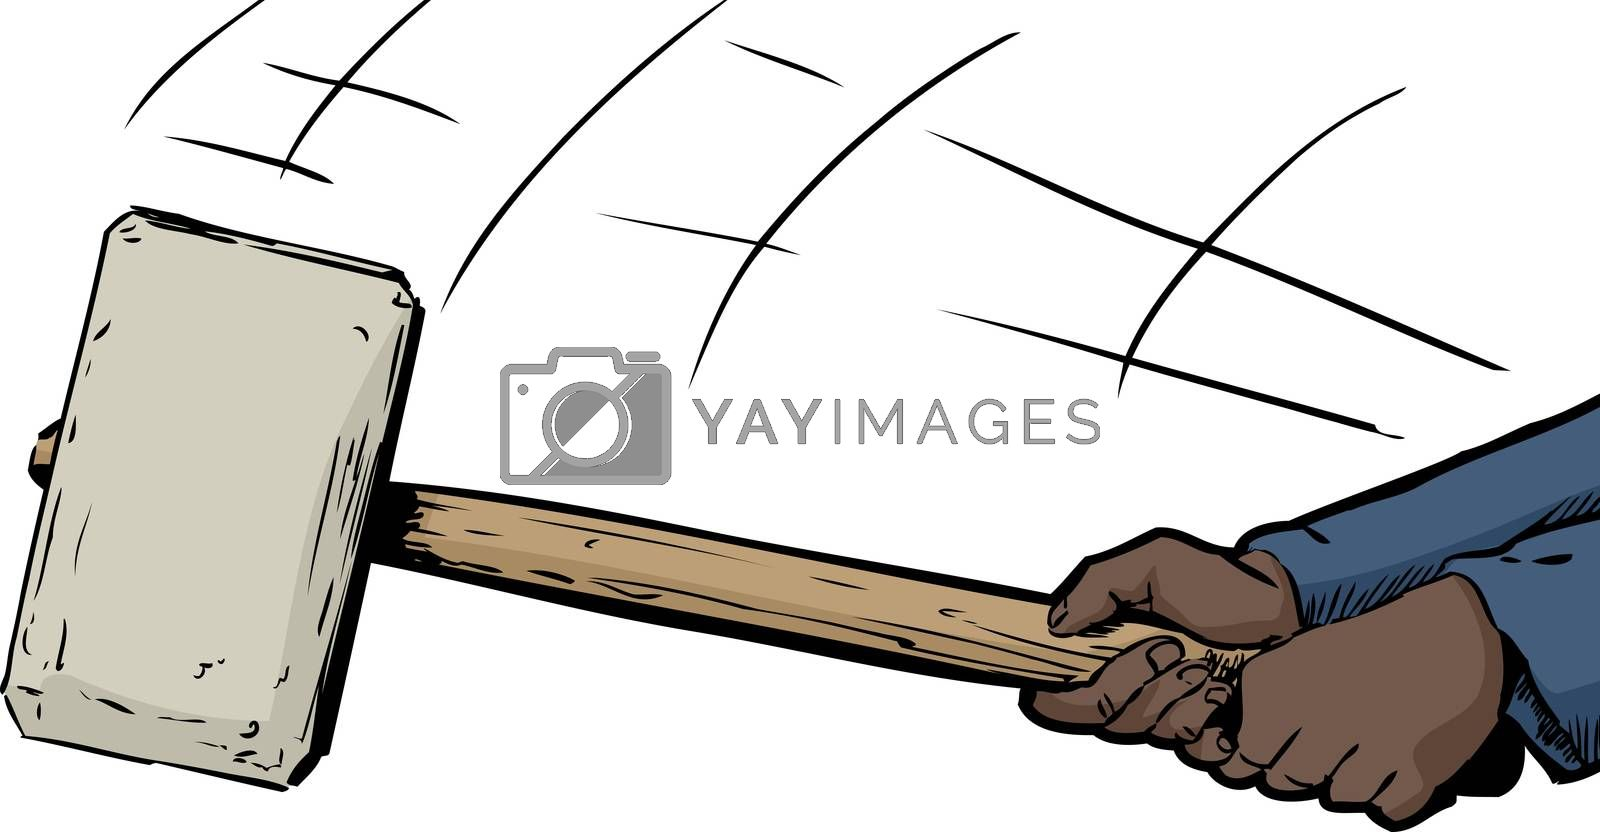 Pair of hands wielding a large sledge hammer over white